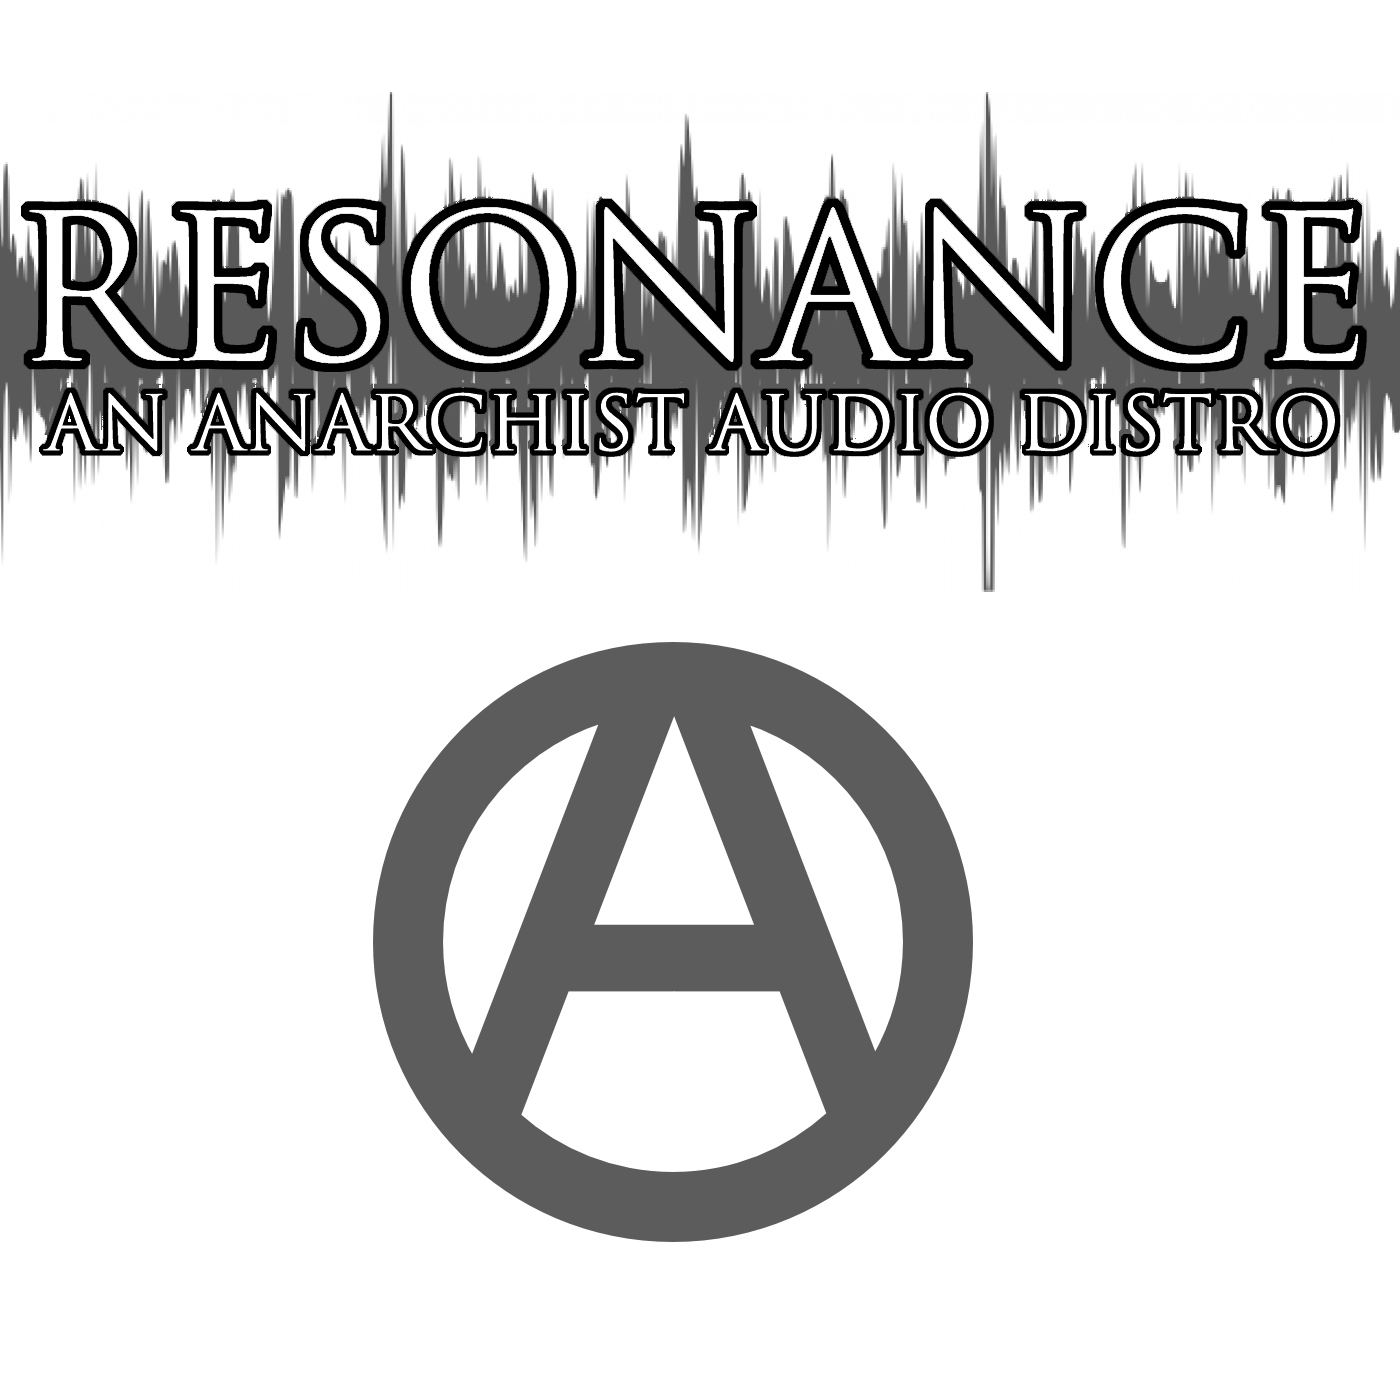 Resonance: An Anarchist Audio Distro